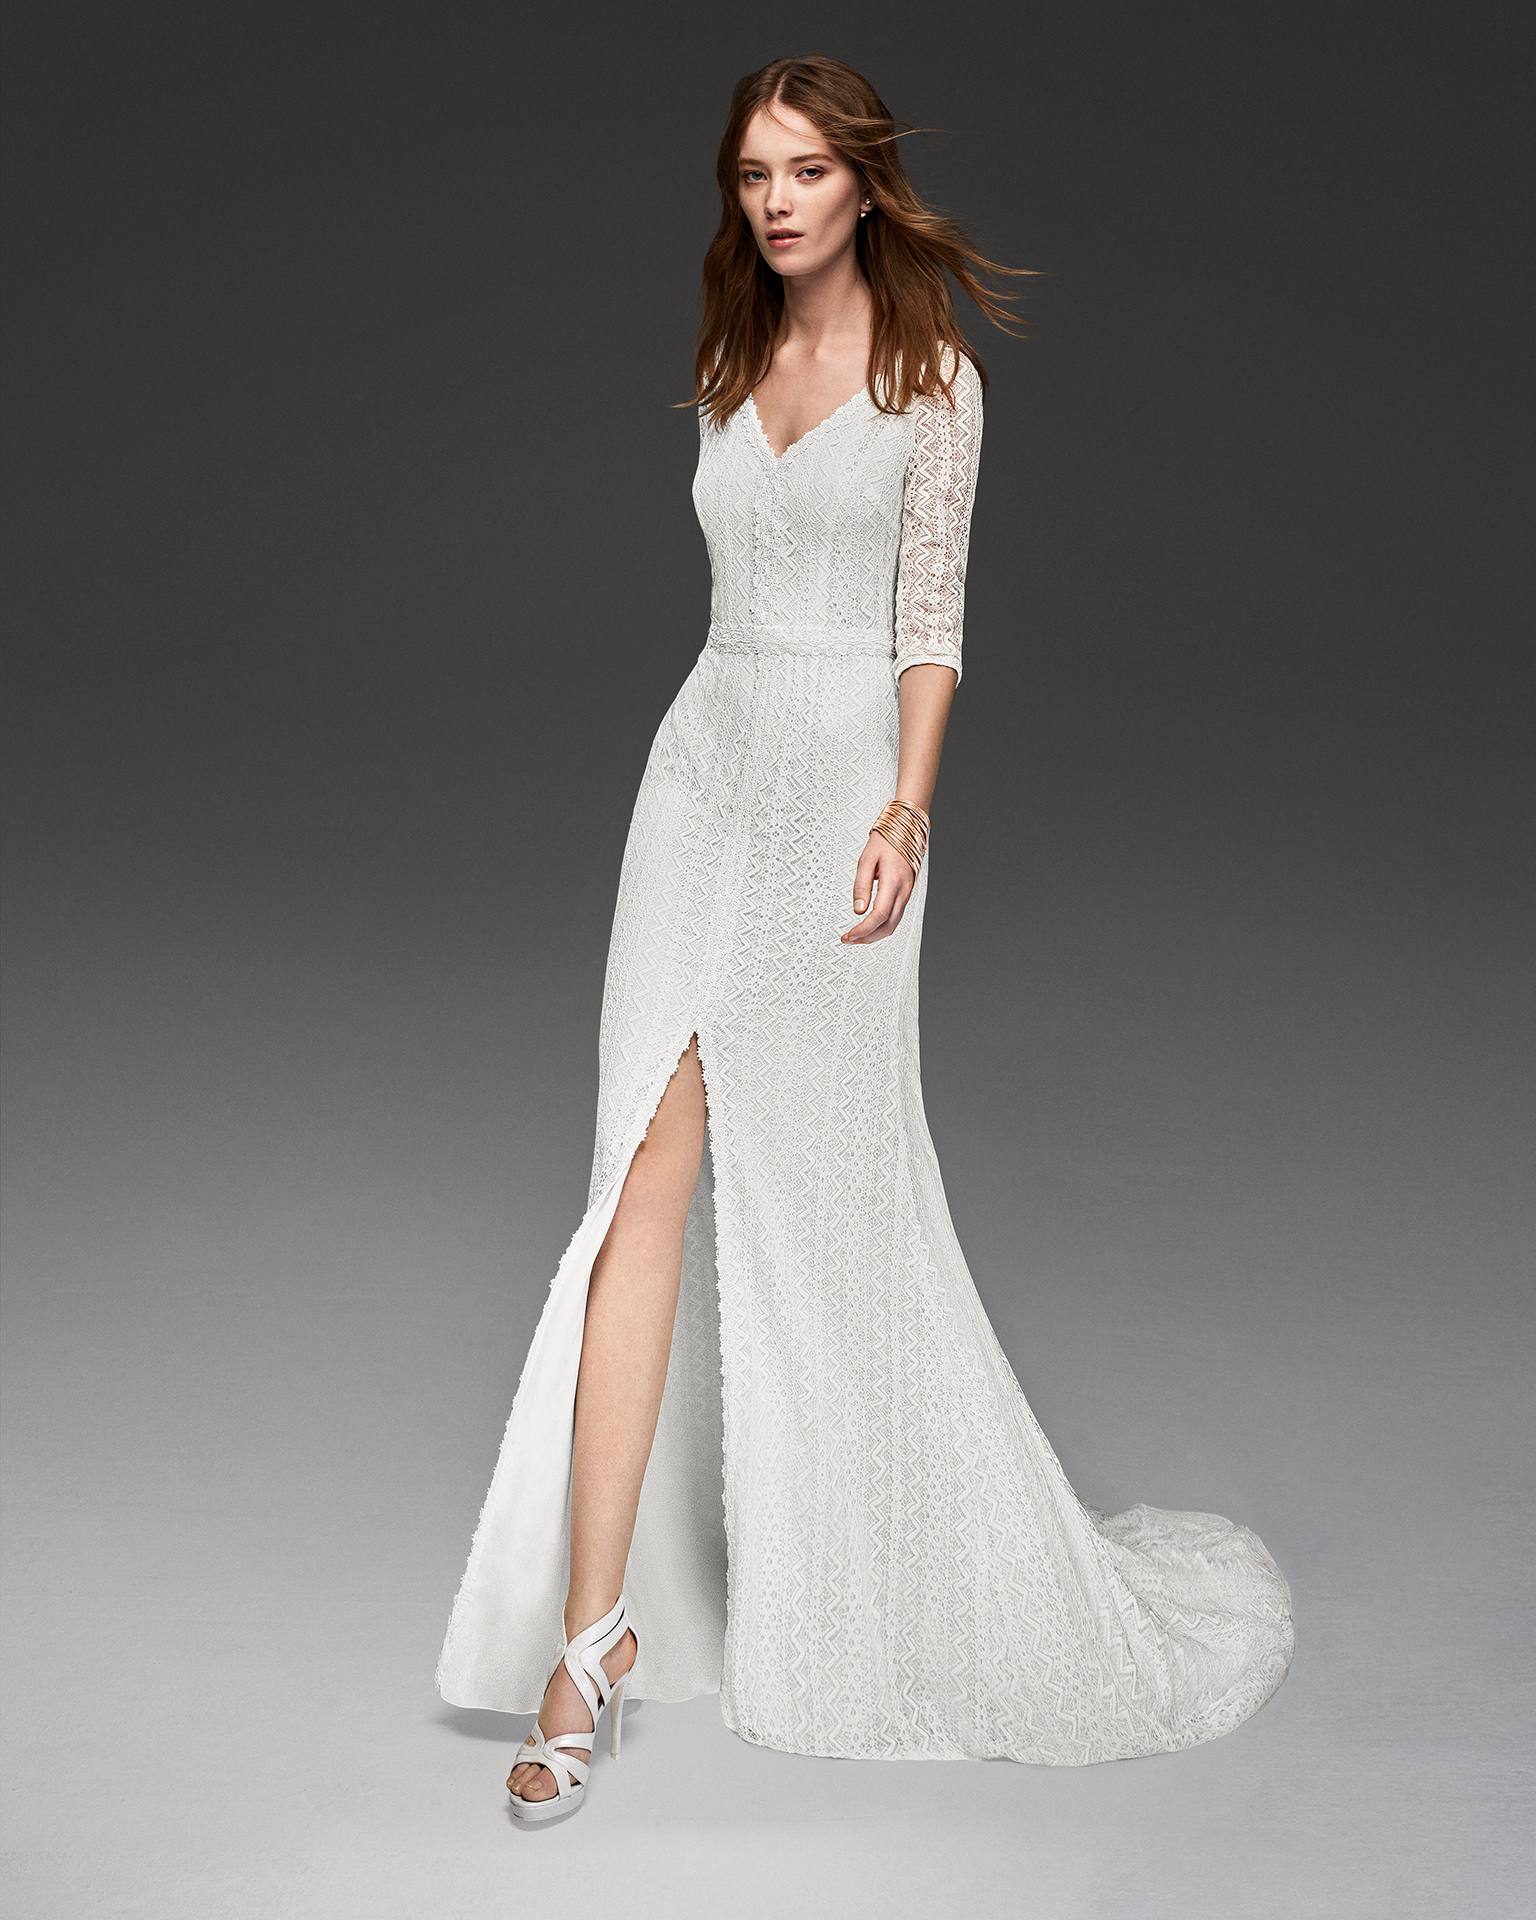 Boho-style beaded lace wedding dress with three-quarter sleeves and front opening.